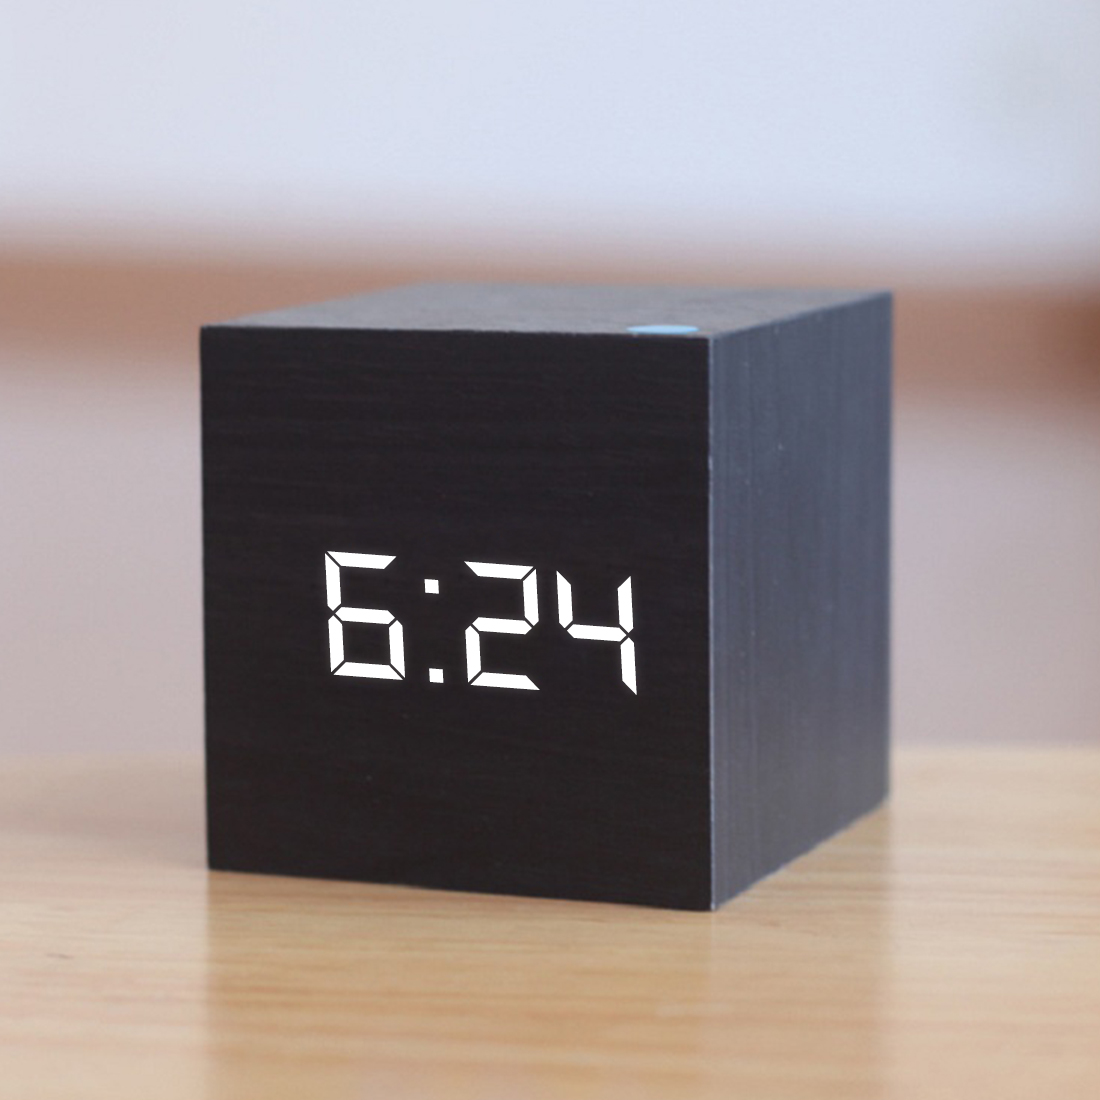 New Qualified Digital Wooden LED Alarm Clock Wood Retro Glow Clock Desktop Table Decor Voice Control Snooze Function Desk Tools title=